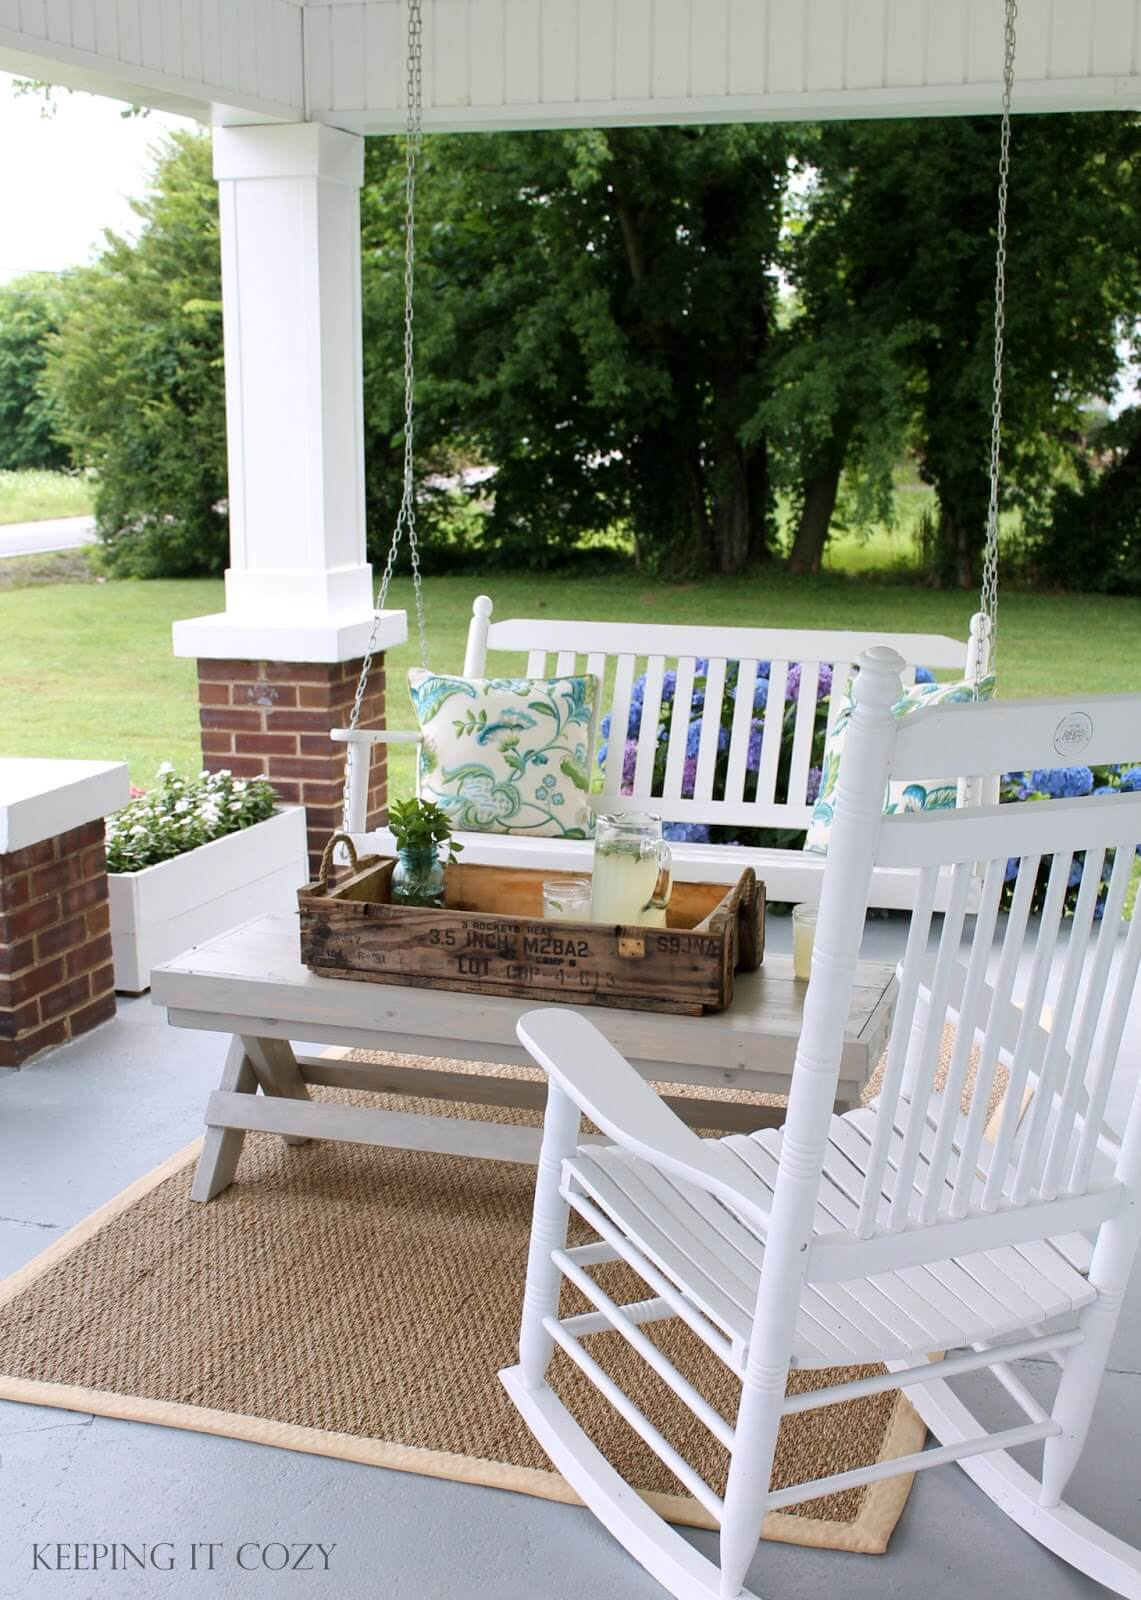 Flower Boxes and Country Furniture